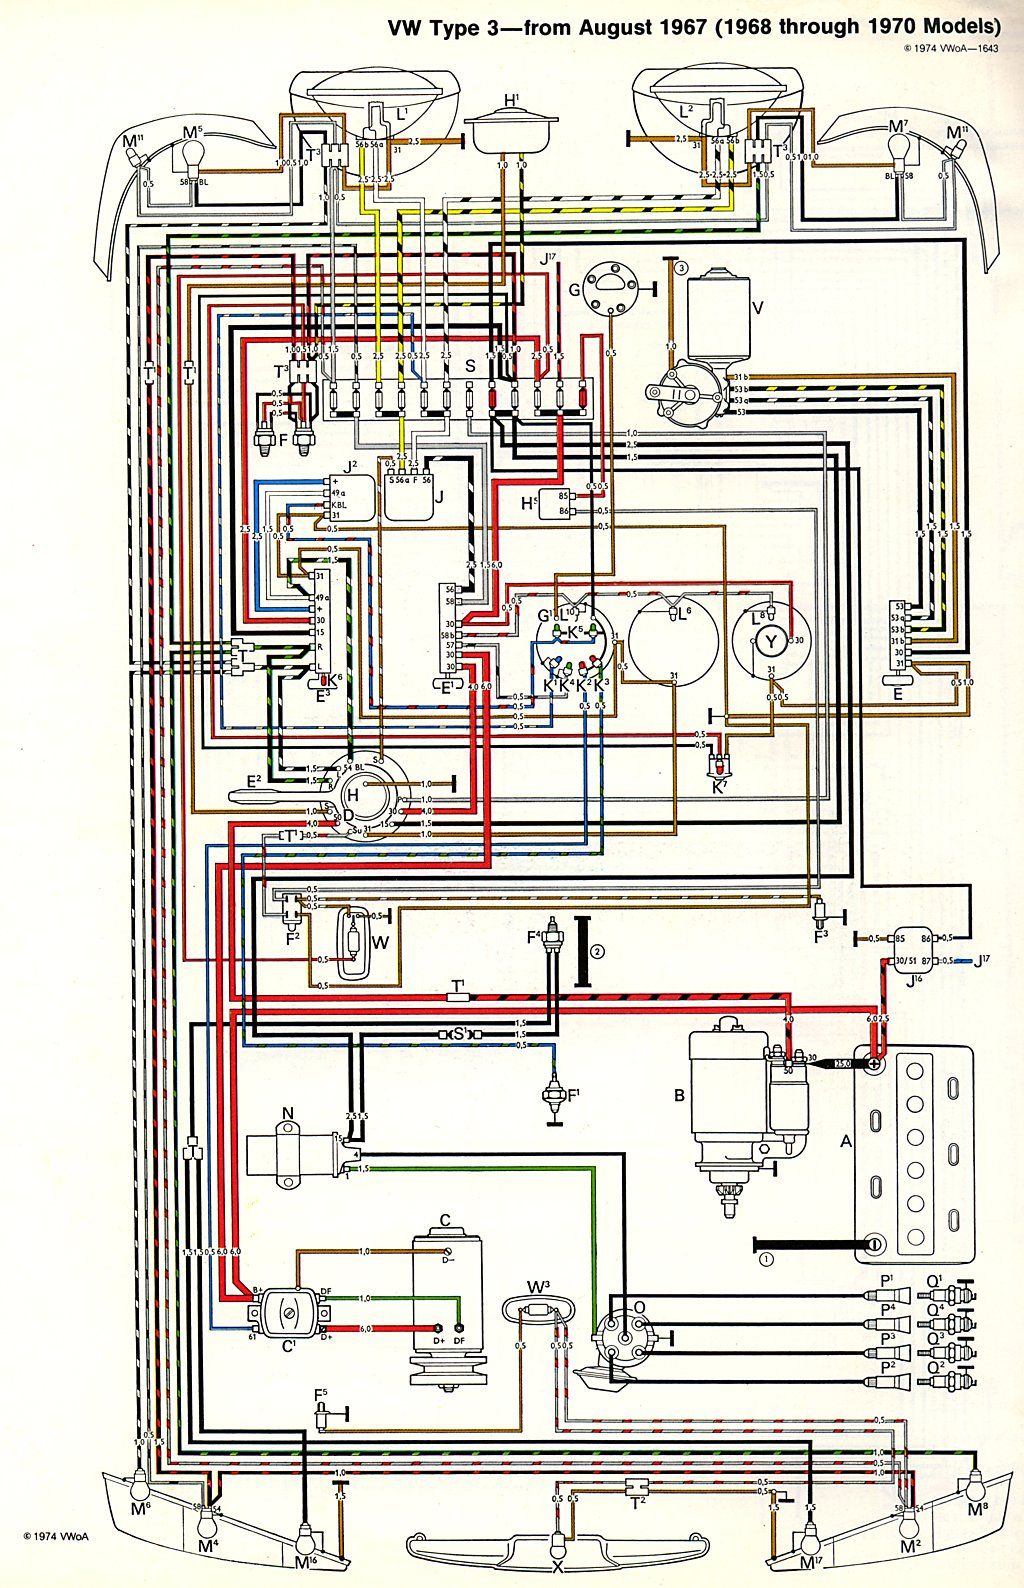 type3_6870 vw thing wiring diagram 1974 beetle heater diagram \u2022 wiring 1971 vw bus wiring diagram at mifinder.co